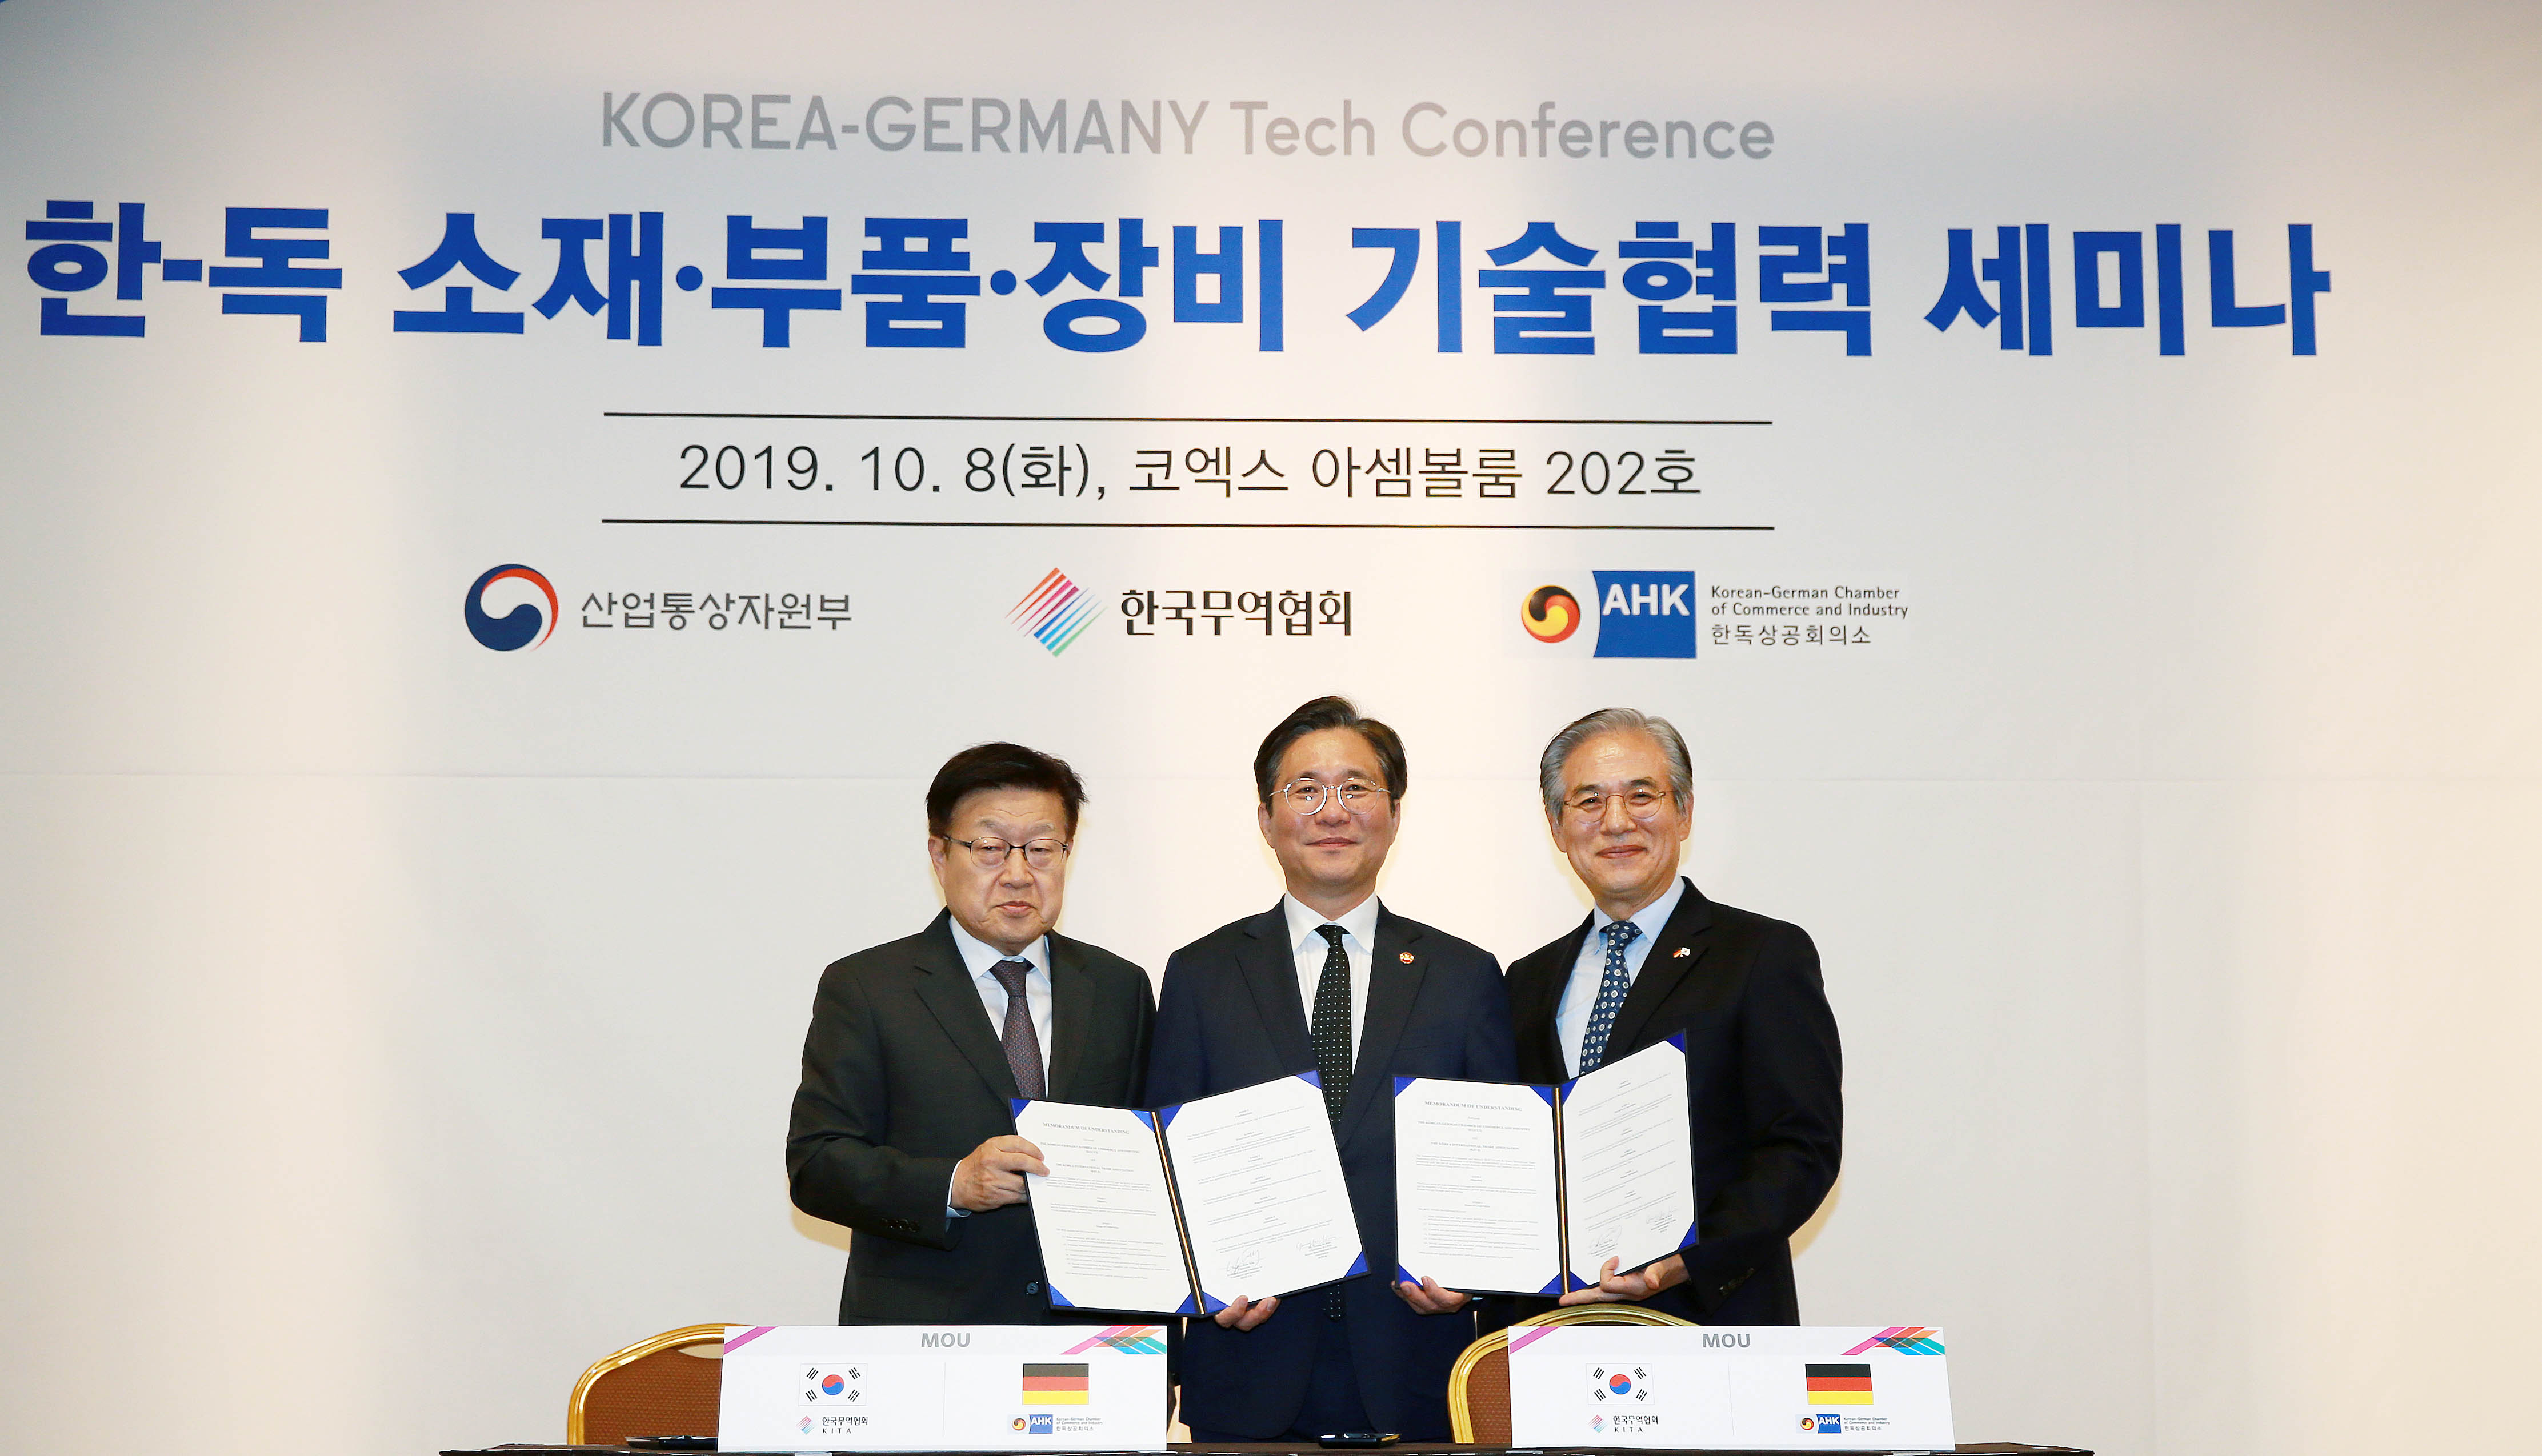 Minister Sung attends Korea-Germany tech conference in Seoul Image 0